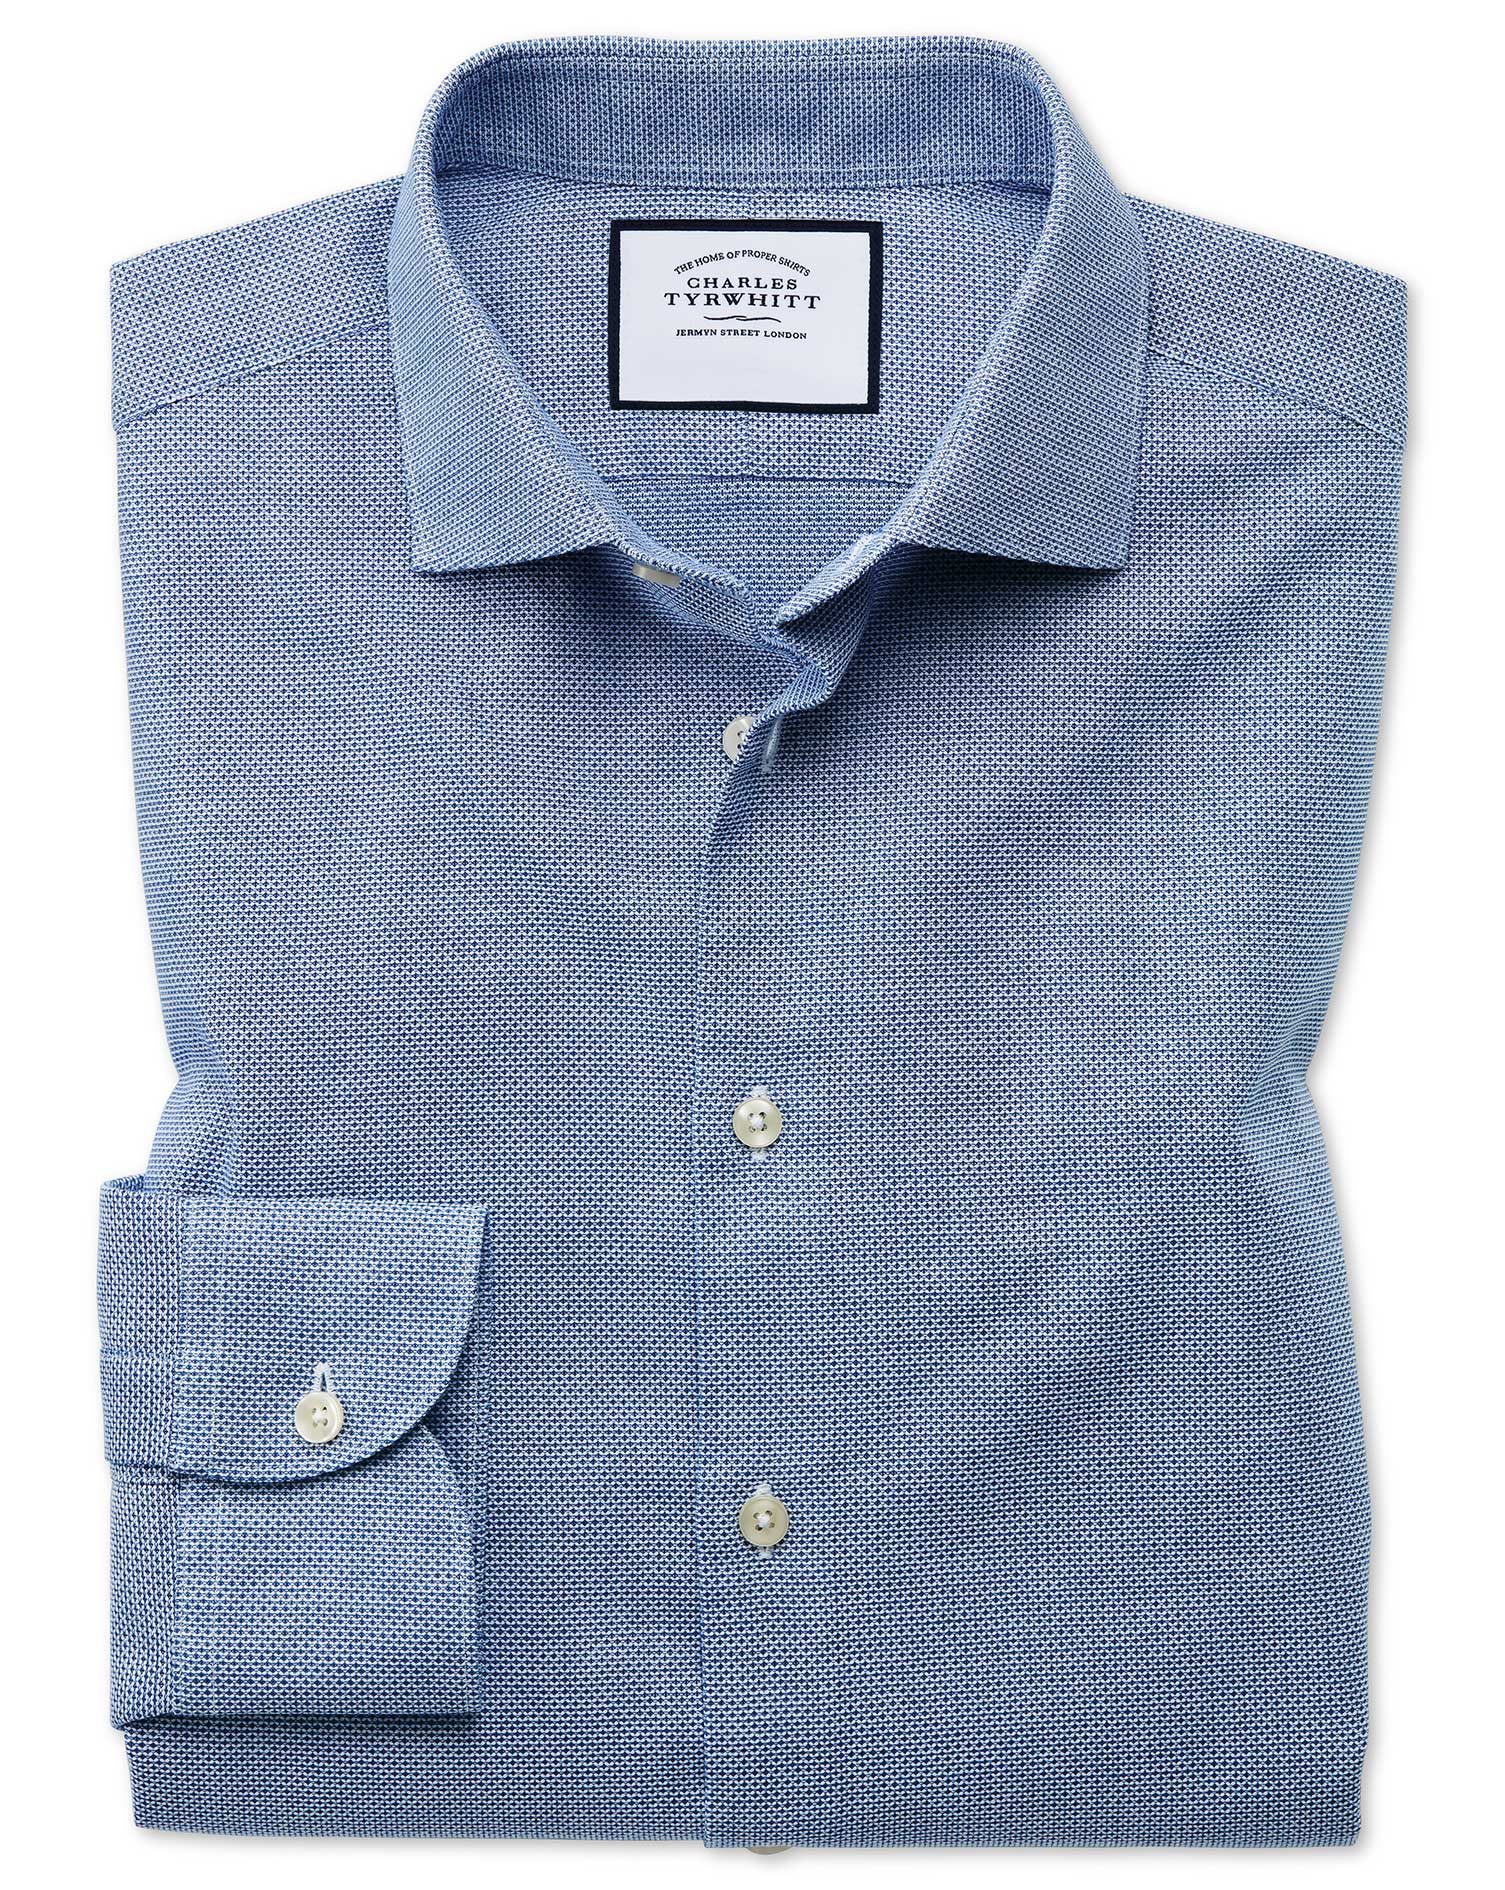 Extra Slim Fit Business Casual Leno Texture Blue Cotton Formal Shirt Single Cuff Size 15.5/32 by Cha